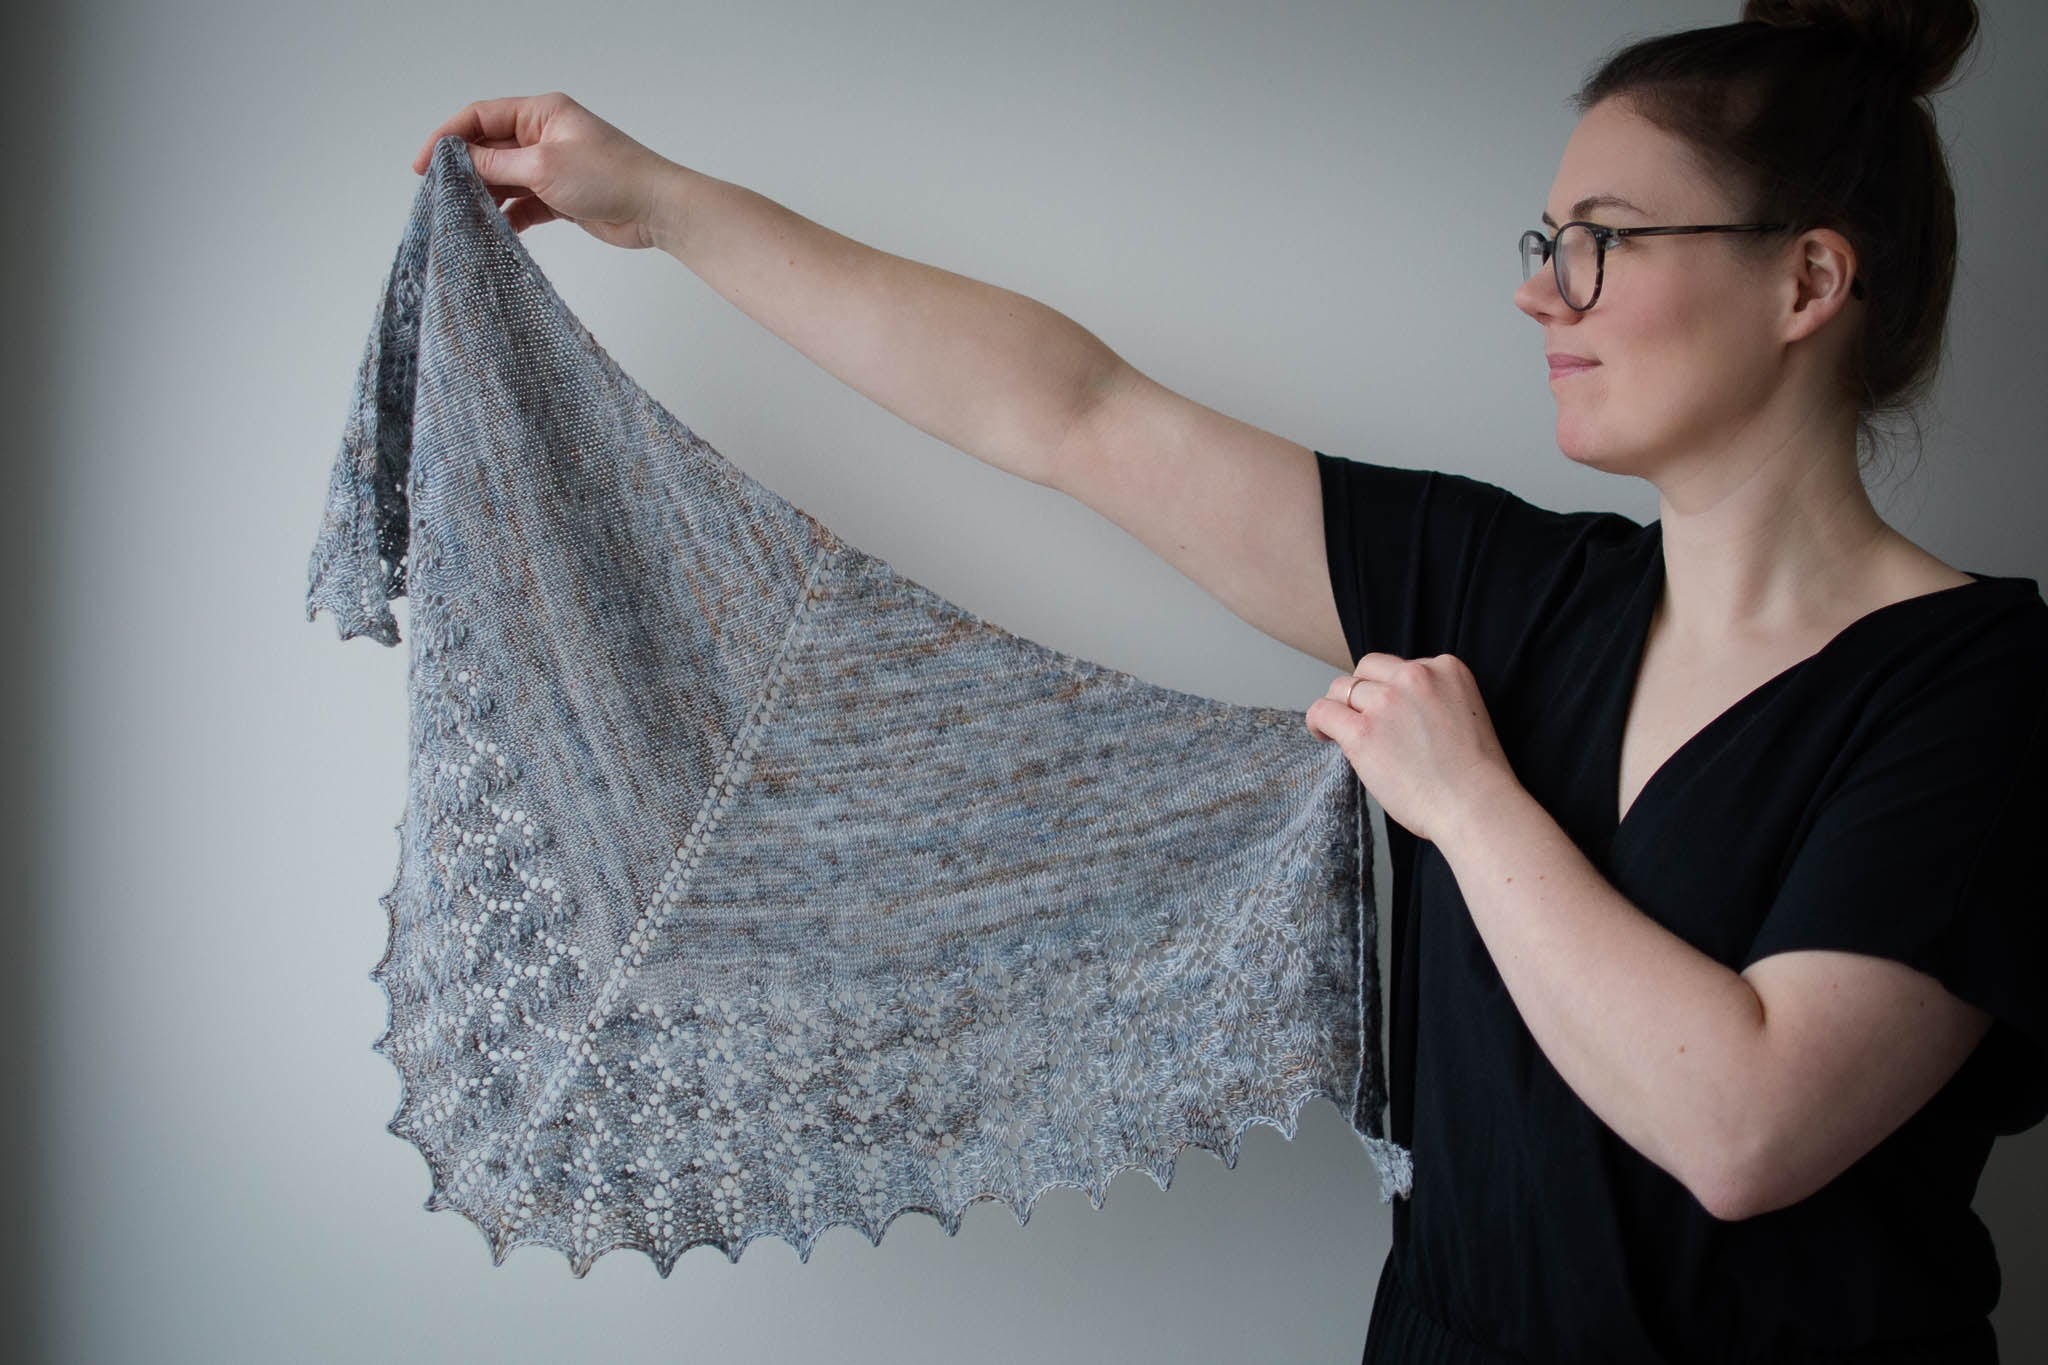 A young white woman wearing a black t-shirt holds up a grey lace shawl, spreading it out to the left side of the image.